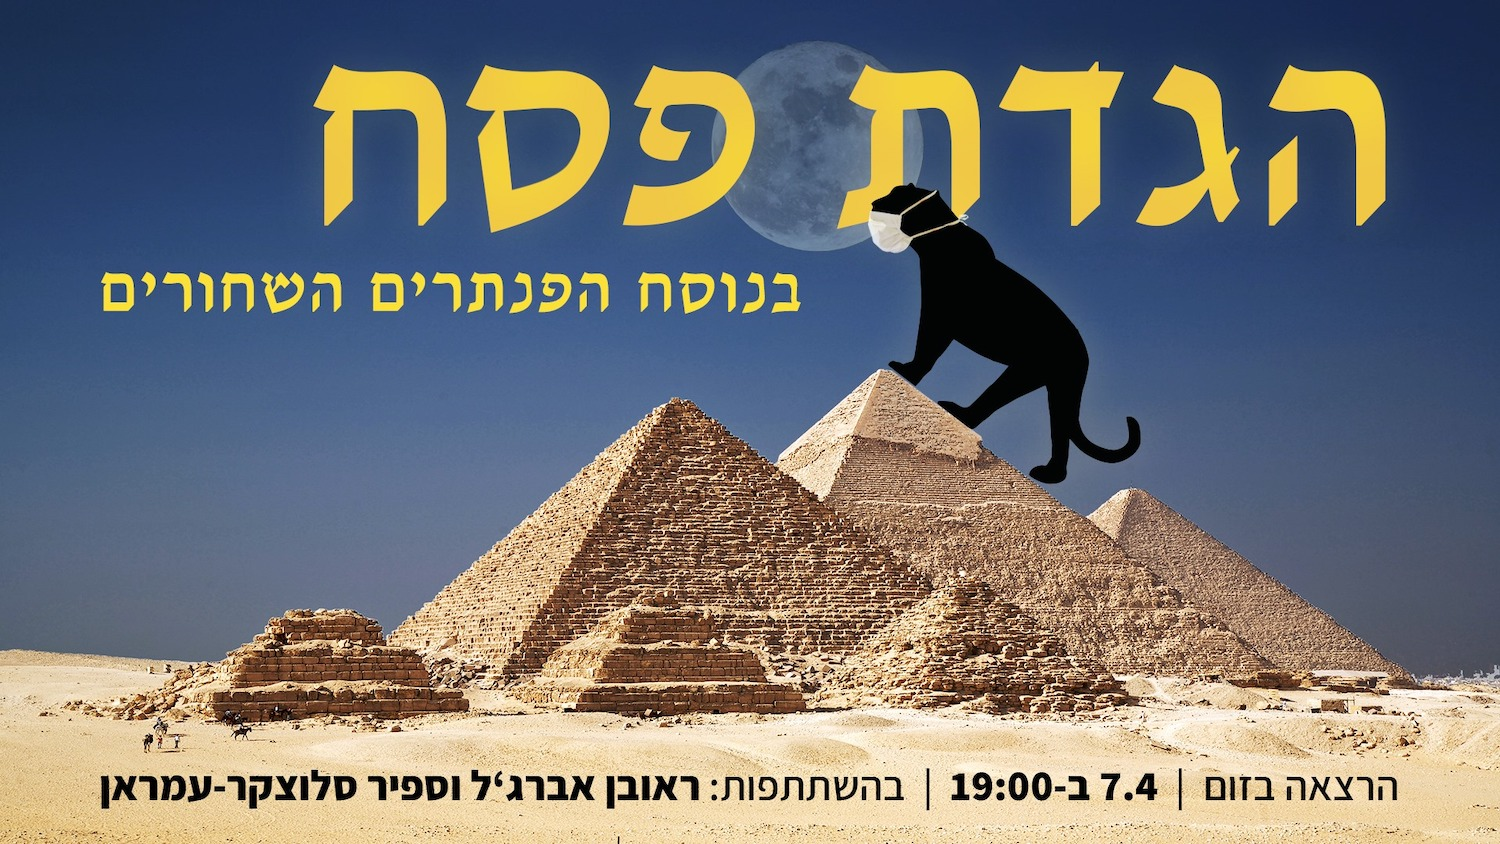 A poster for a Zoom event organized by the Archi-Parchi civic archive for Passover, in cooperation with one of the Israeli Black Panthers, Reuven Abergel. (From the Archi-Parchi Facebook page)